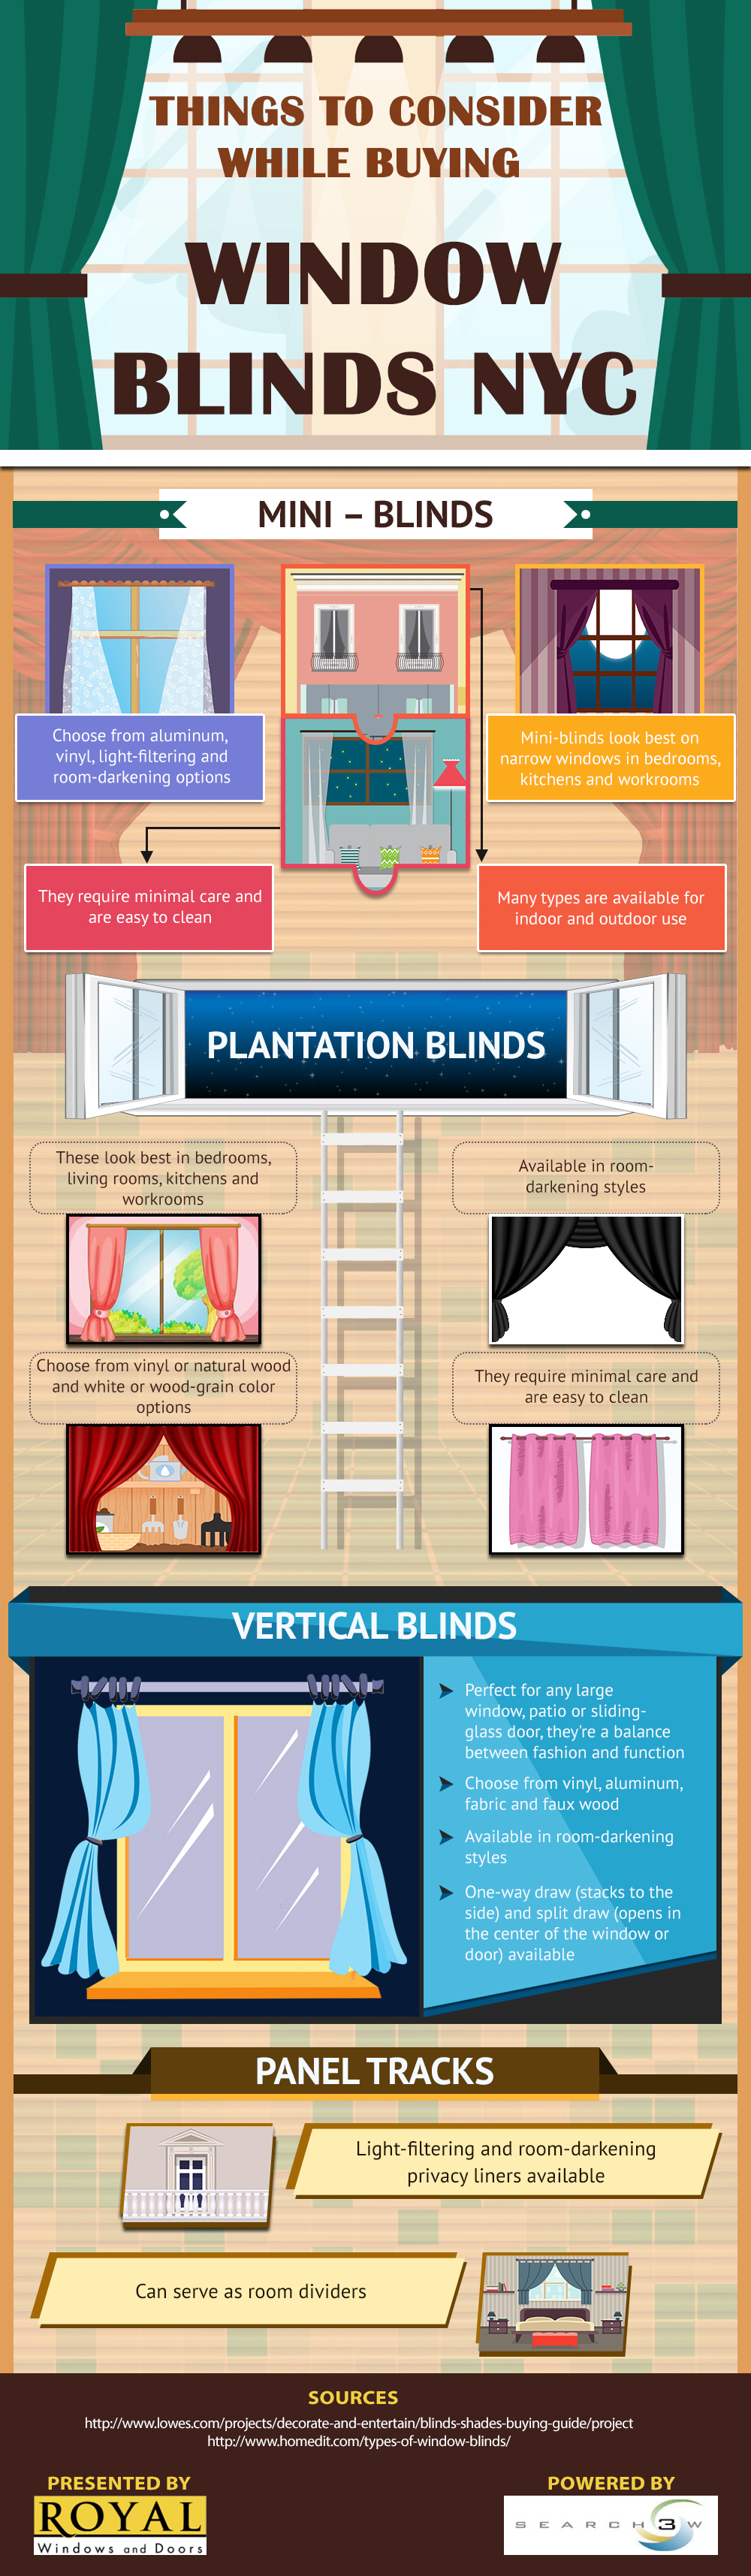 What Are the Most Popular Styles of Window Blinds? - Royal Window Treatments